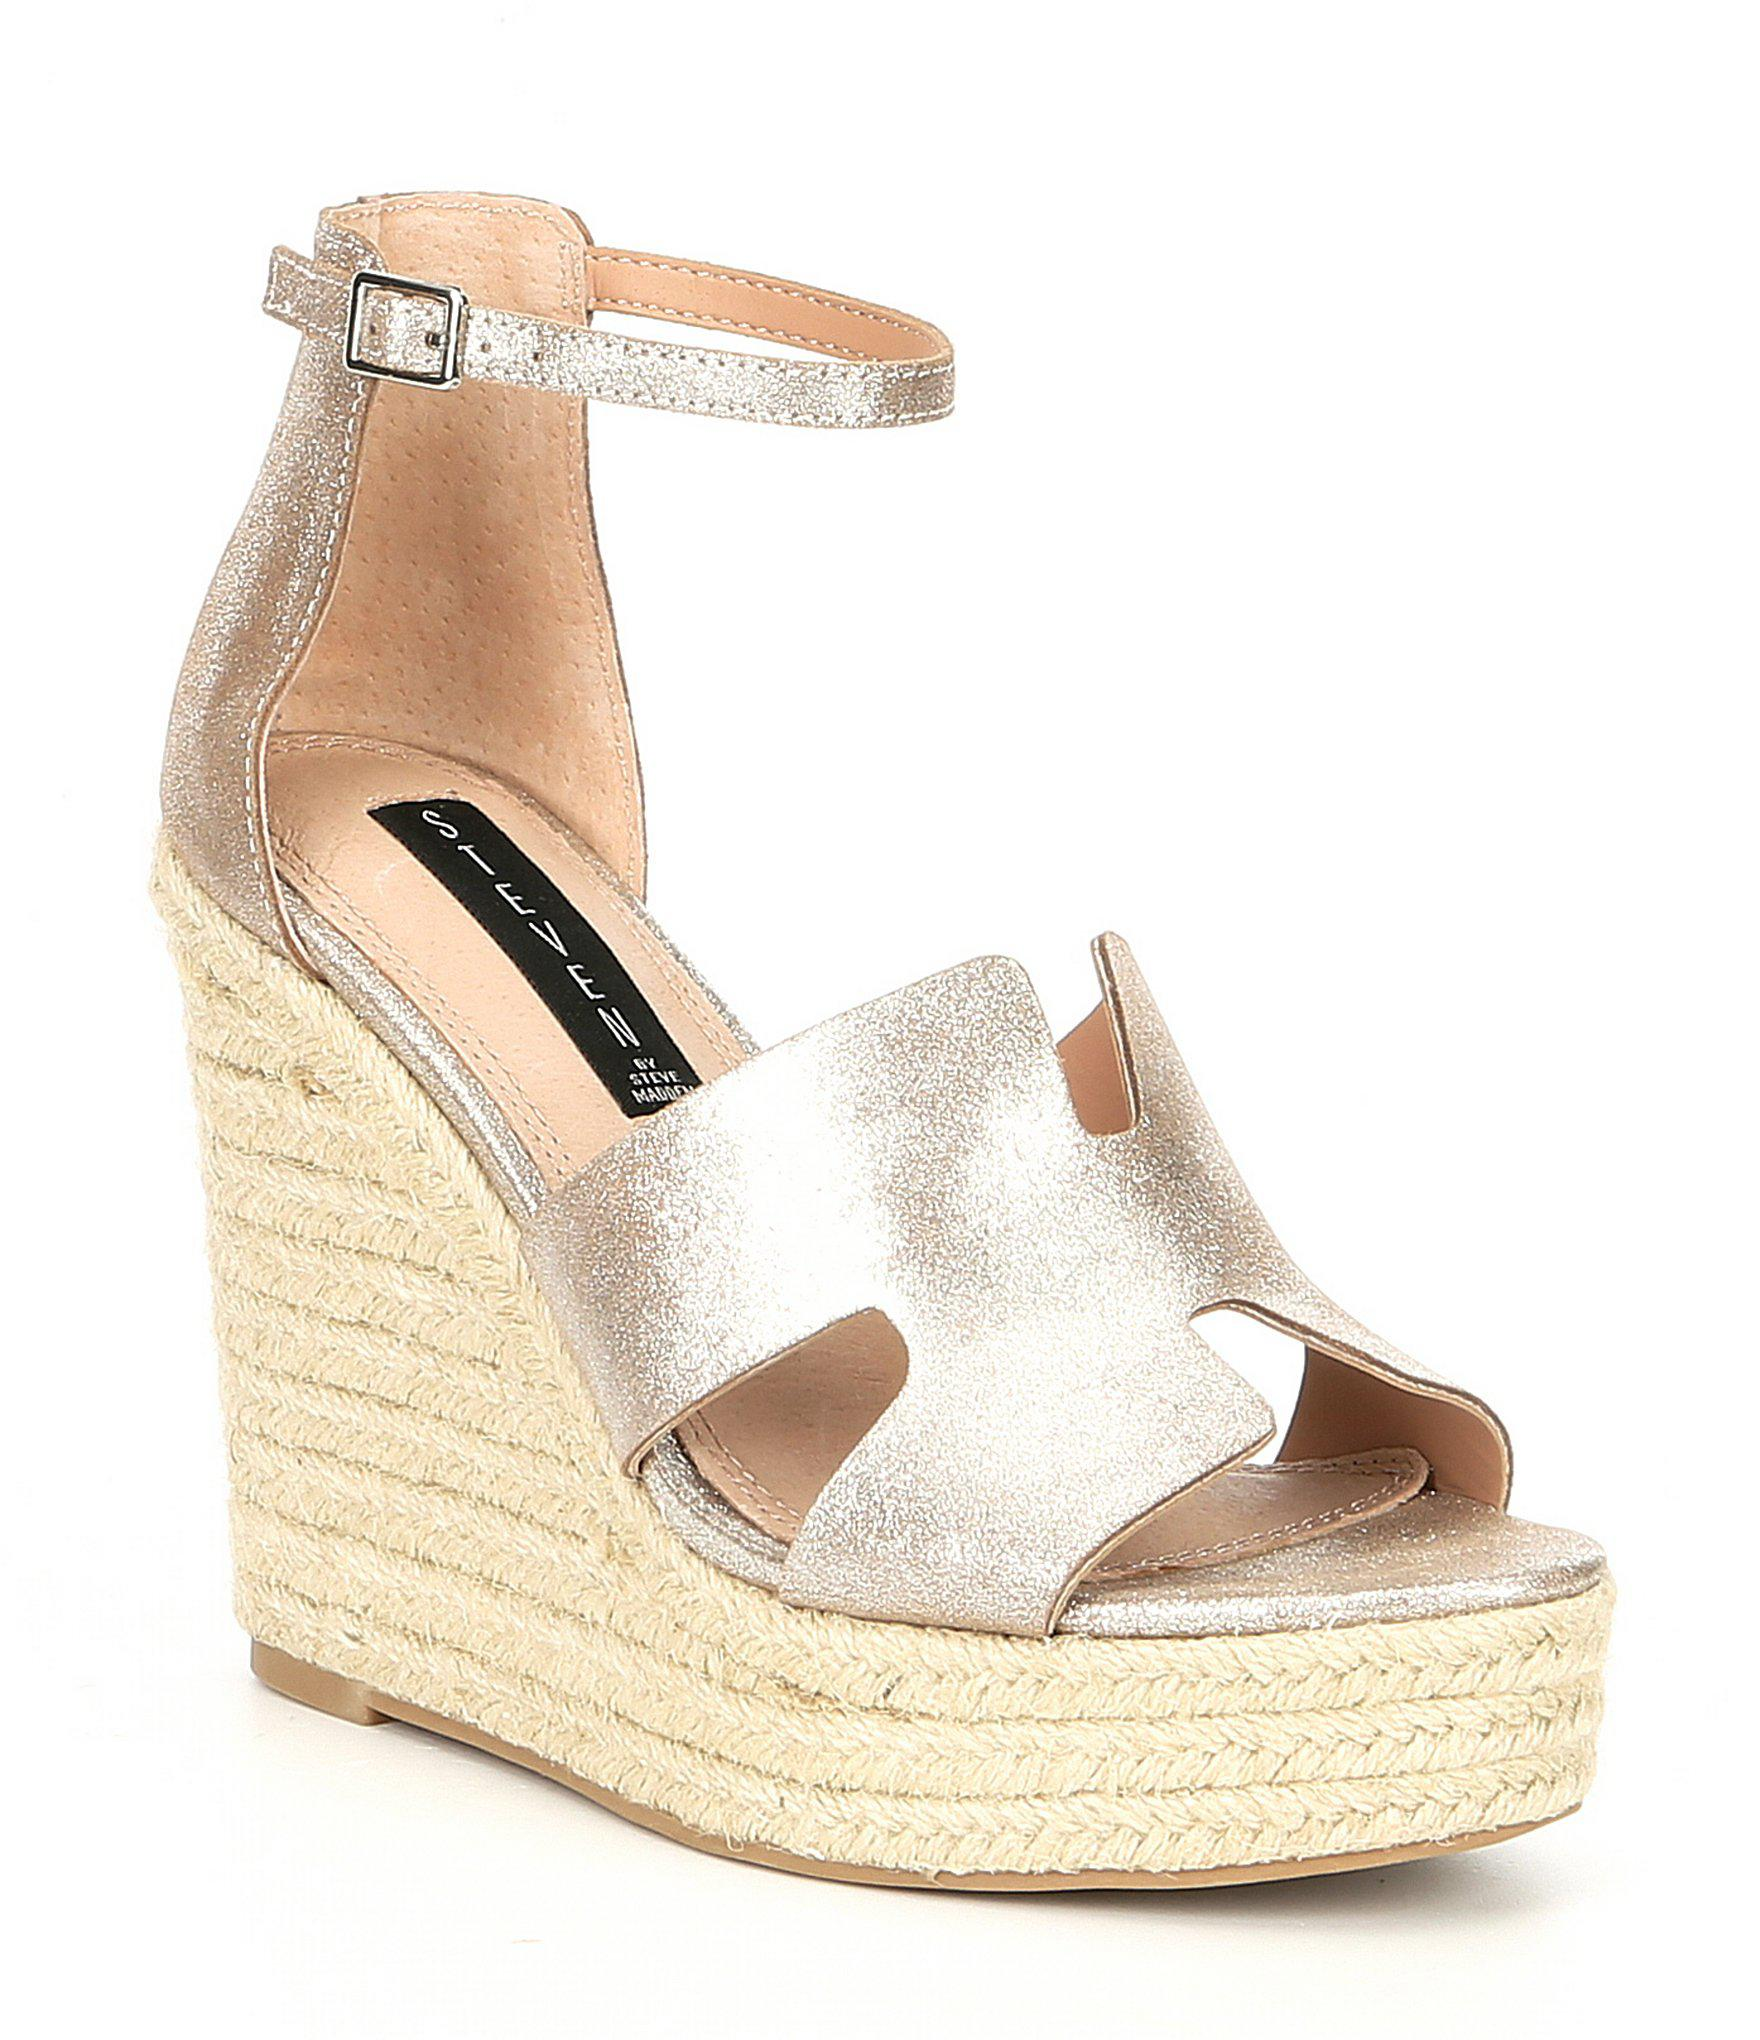 5331a2ed102 Steve Madden. Women s Metallic Steven By Sirena Leather Espadrille Wedge  Sandals